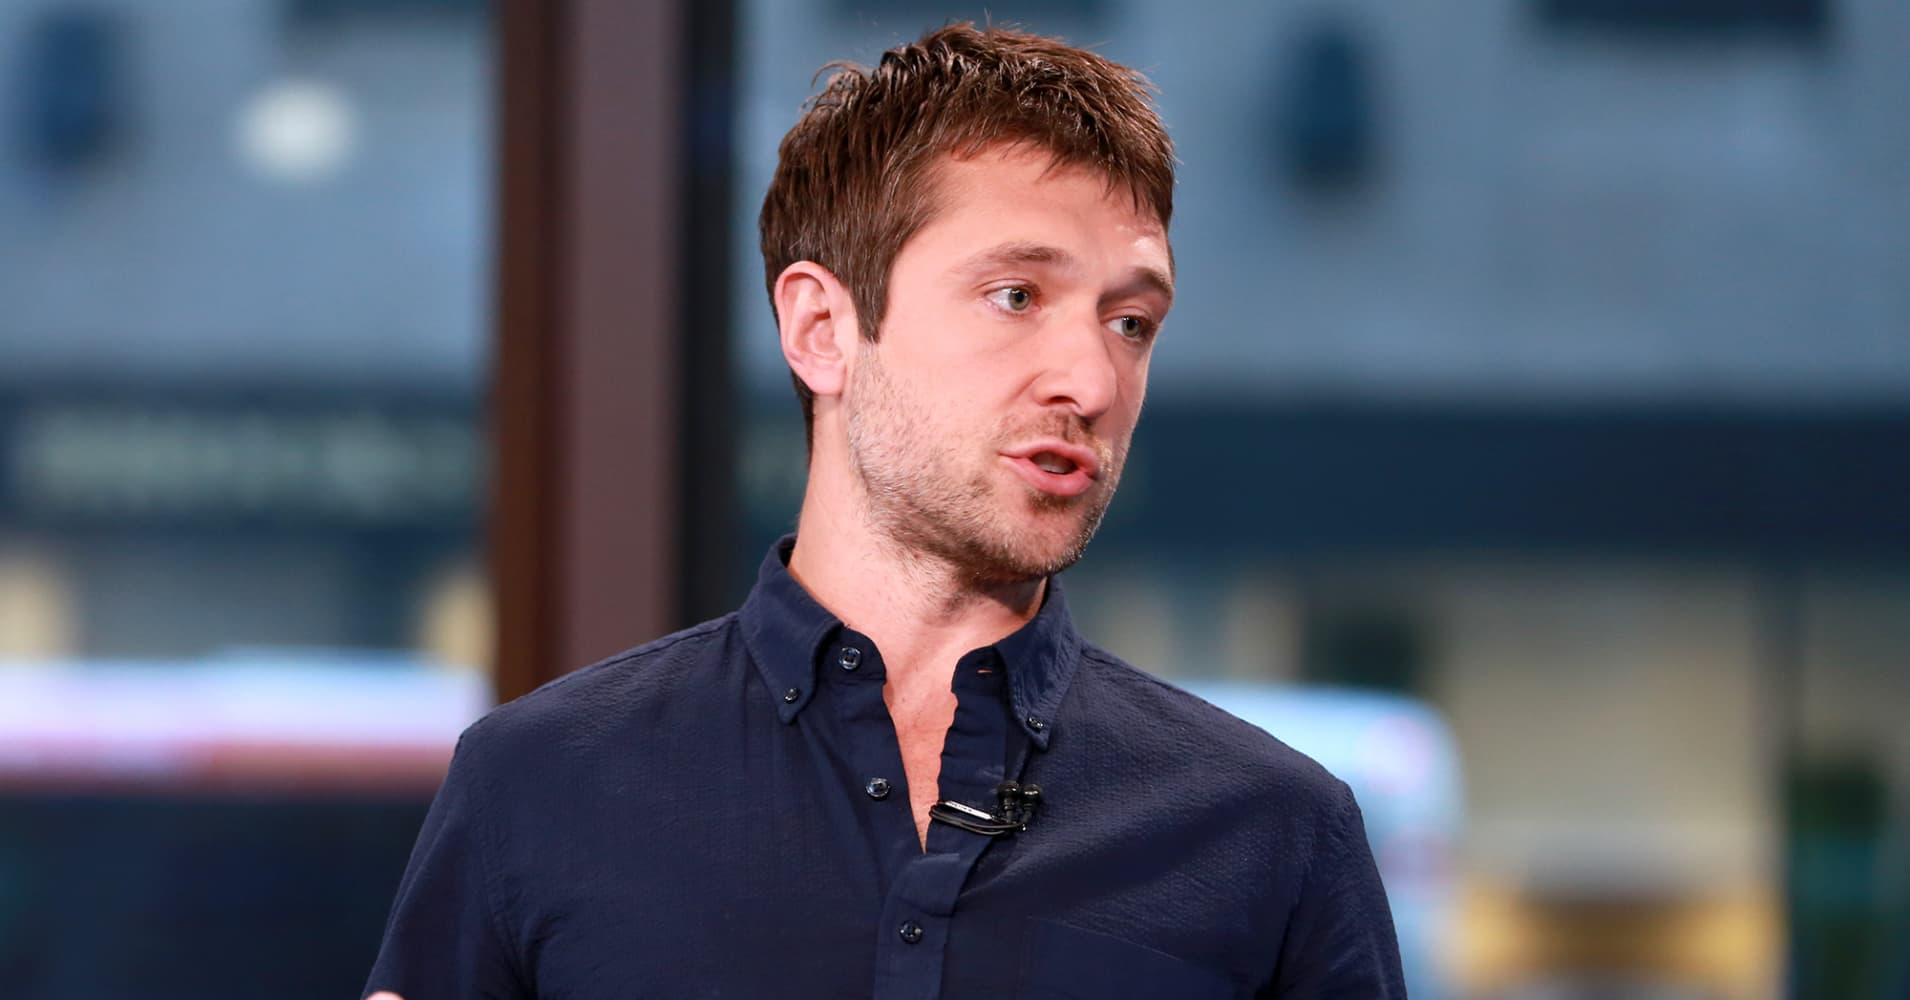 Facebook Can Be Cable for the Next Generation: Ben Lehrer